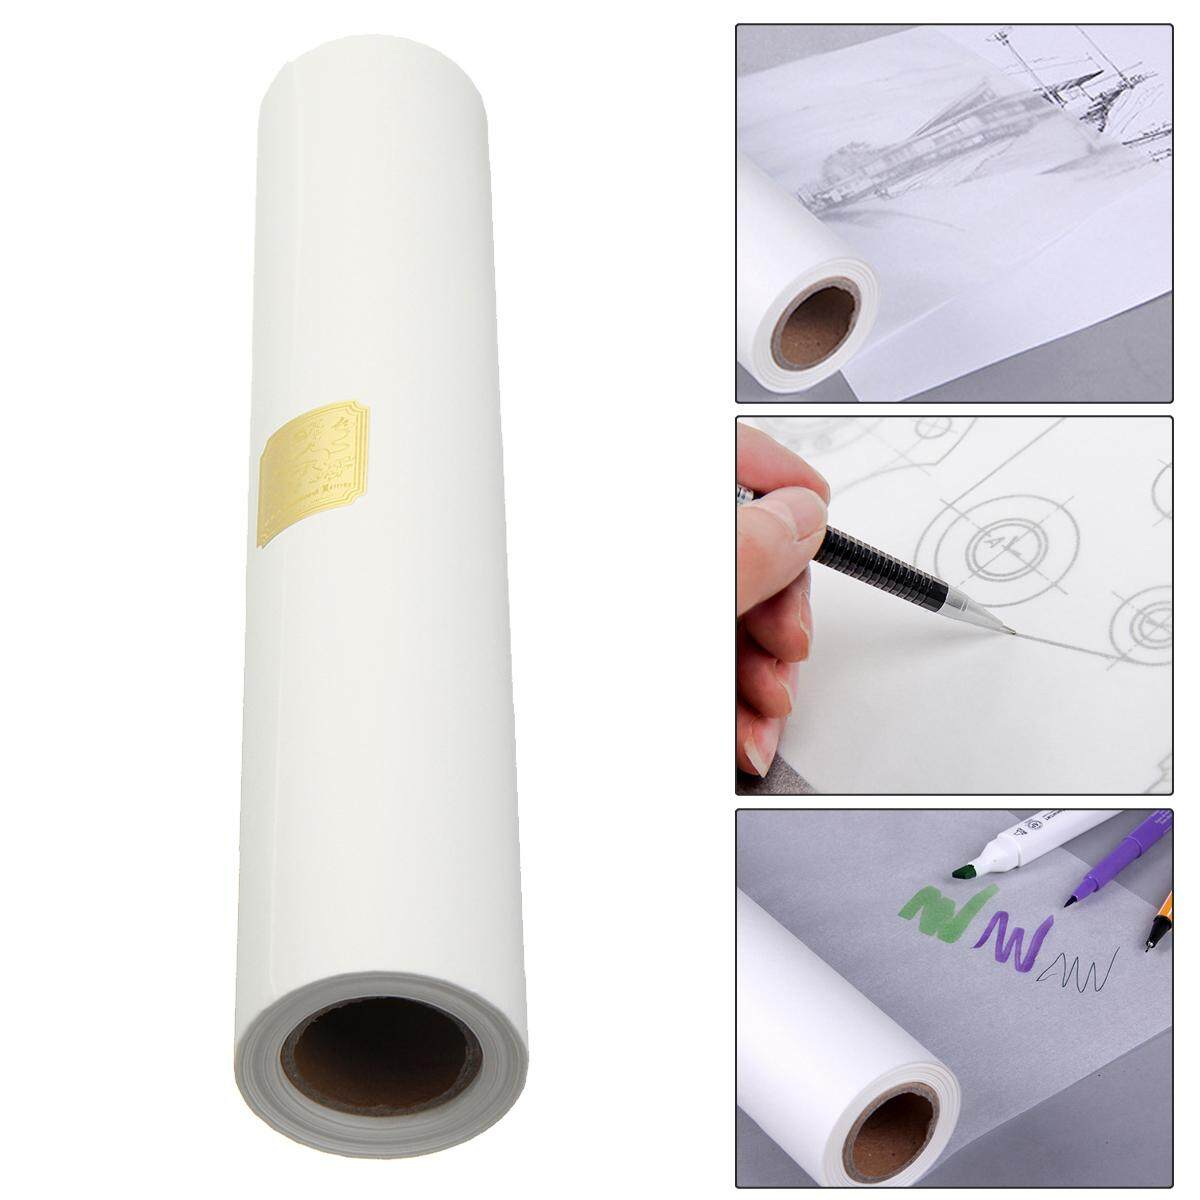 46mx30.5cm Transparent Draft Art Sketch Butter Paper Tracing Paper Roll White By Freebang.